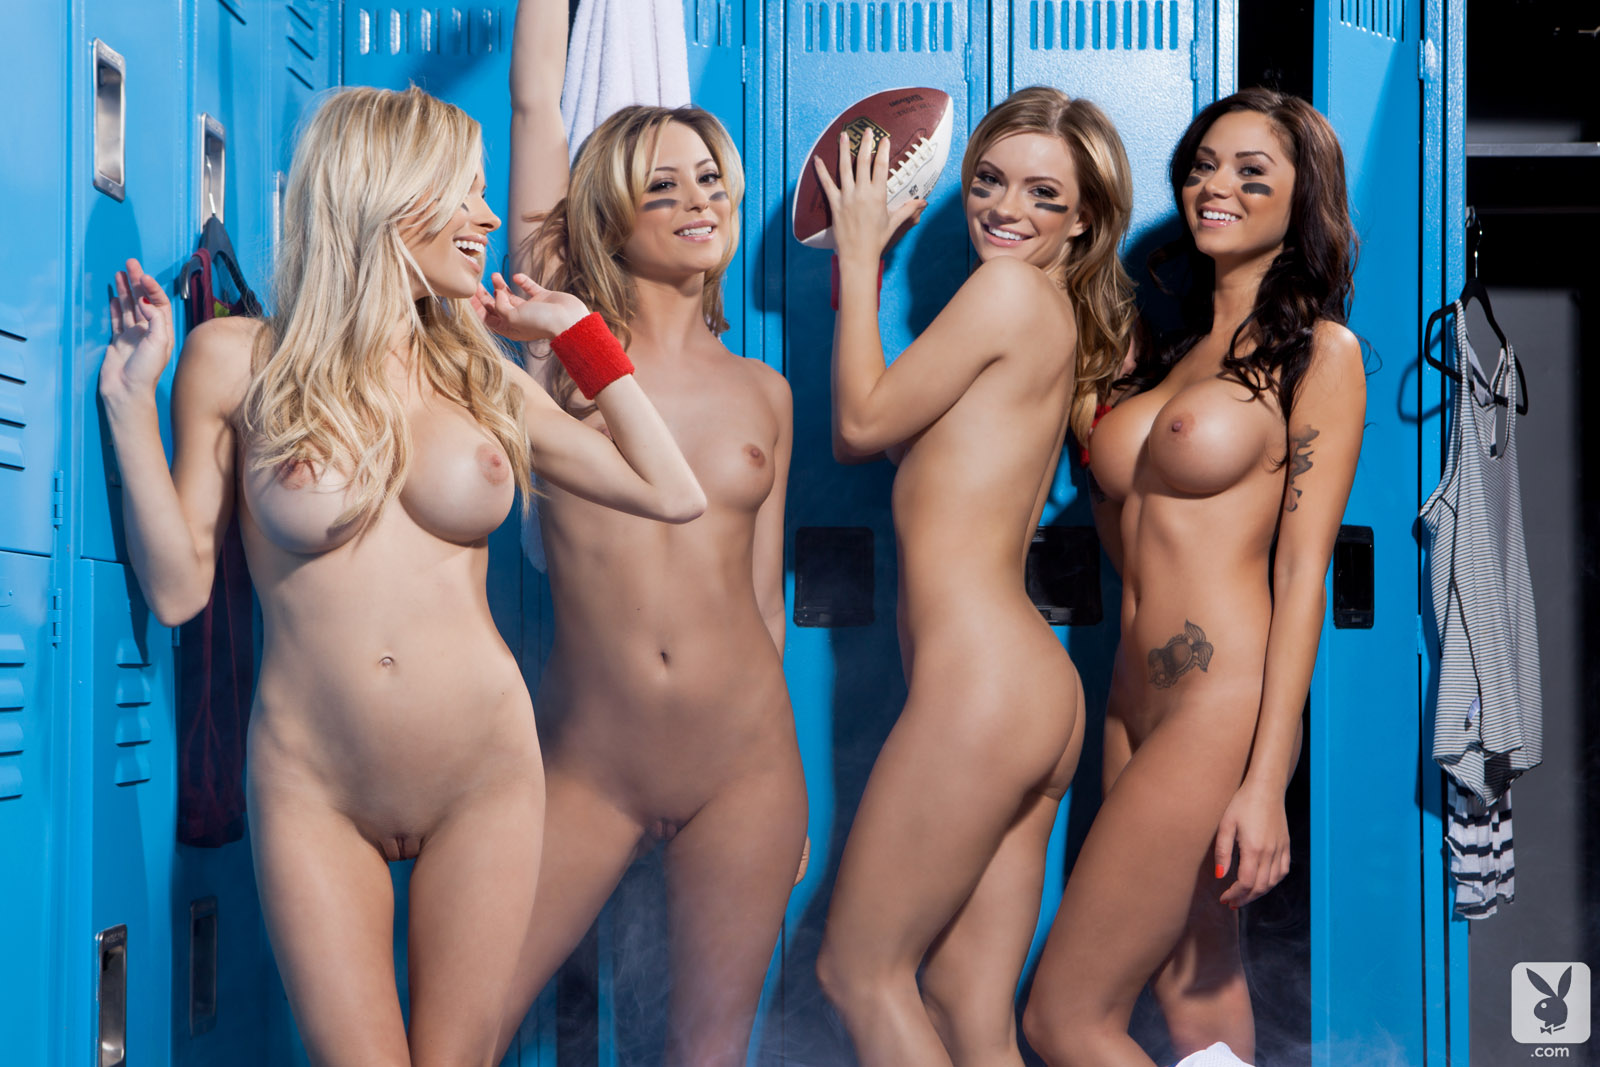 Girls Locker Room Topless